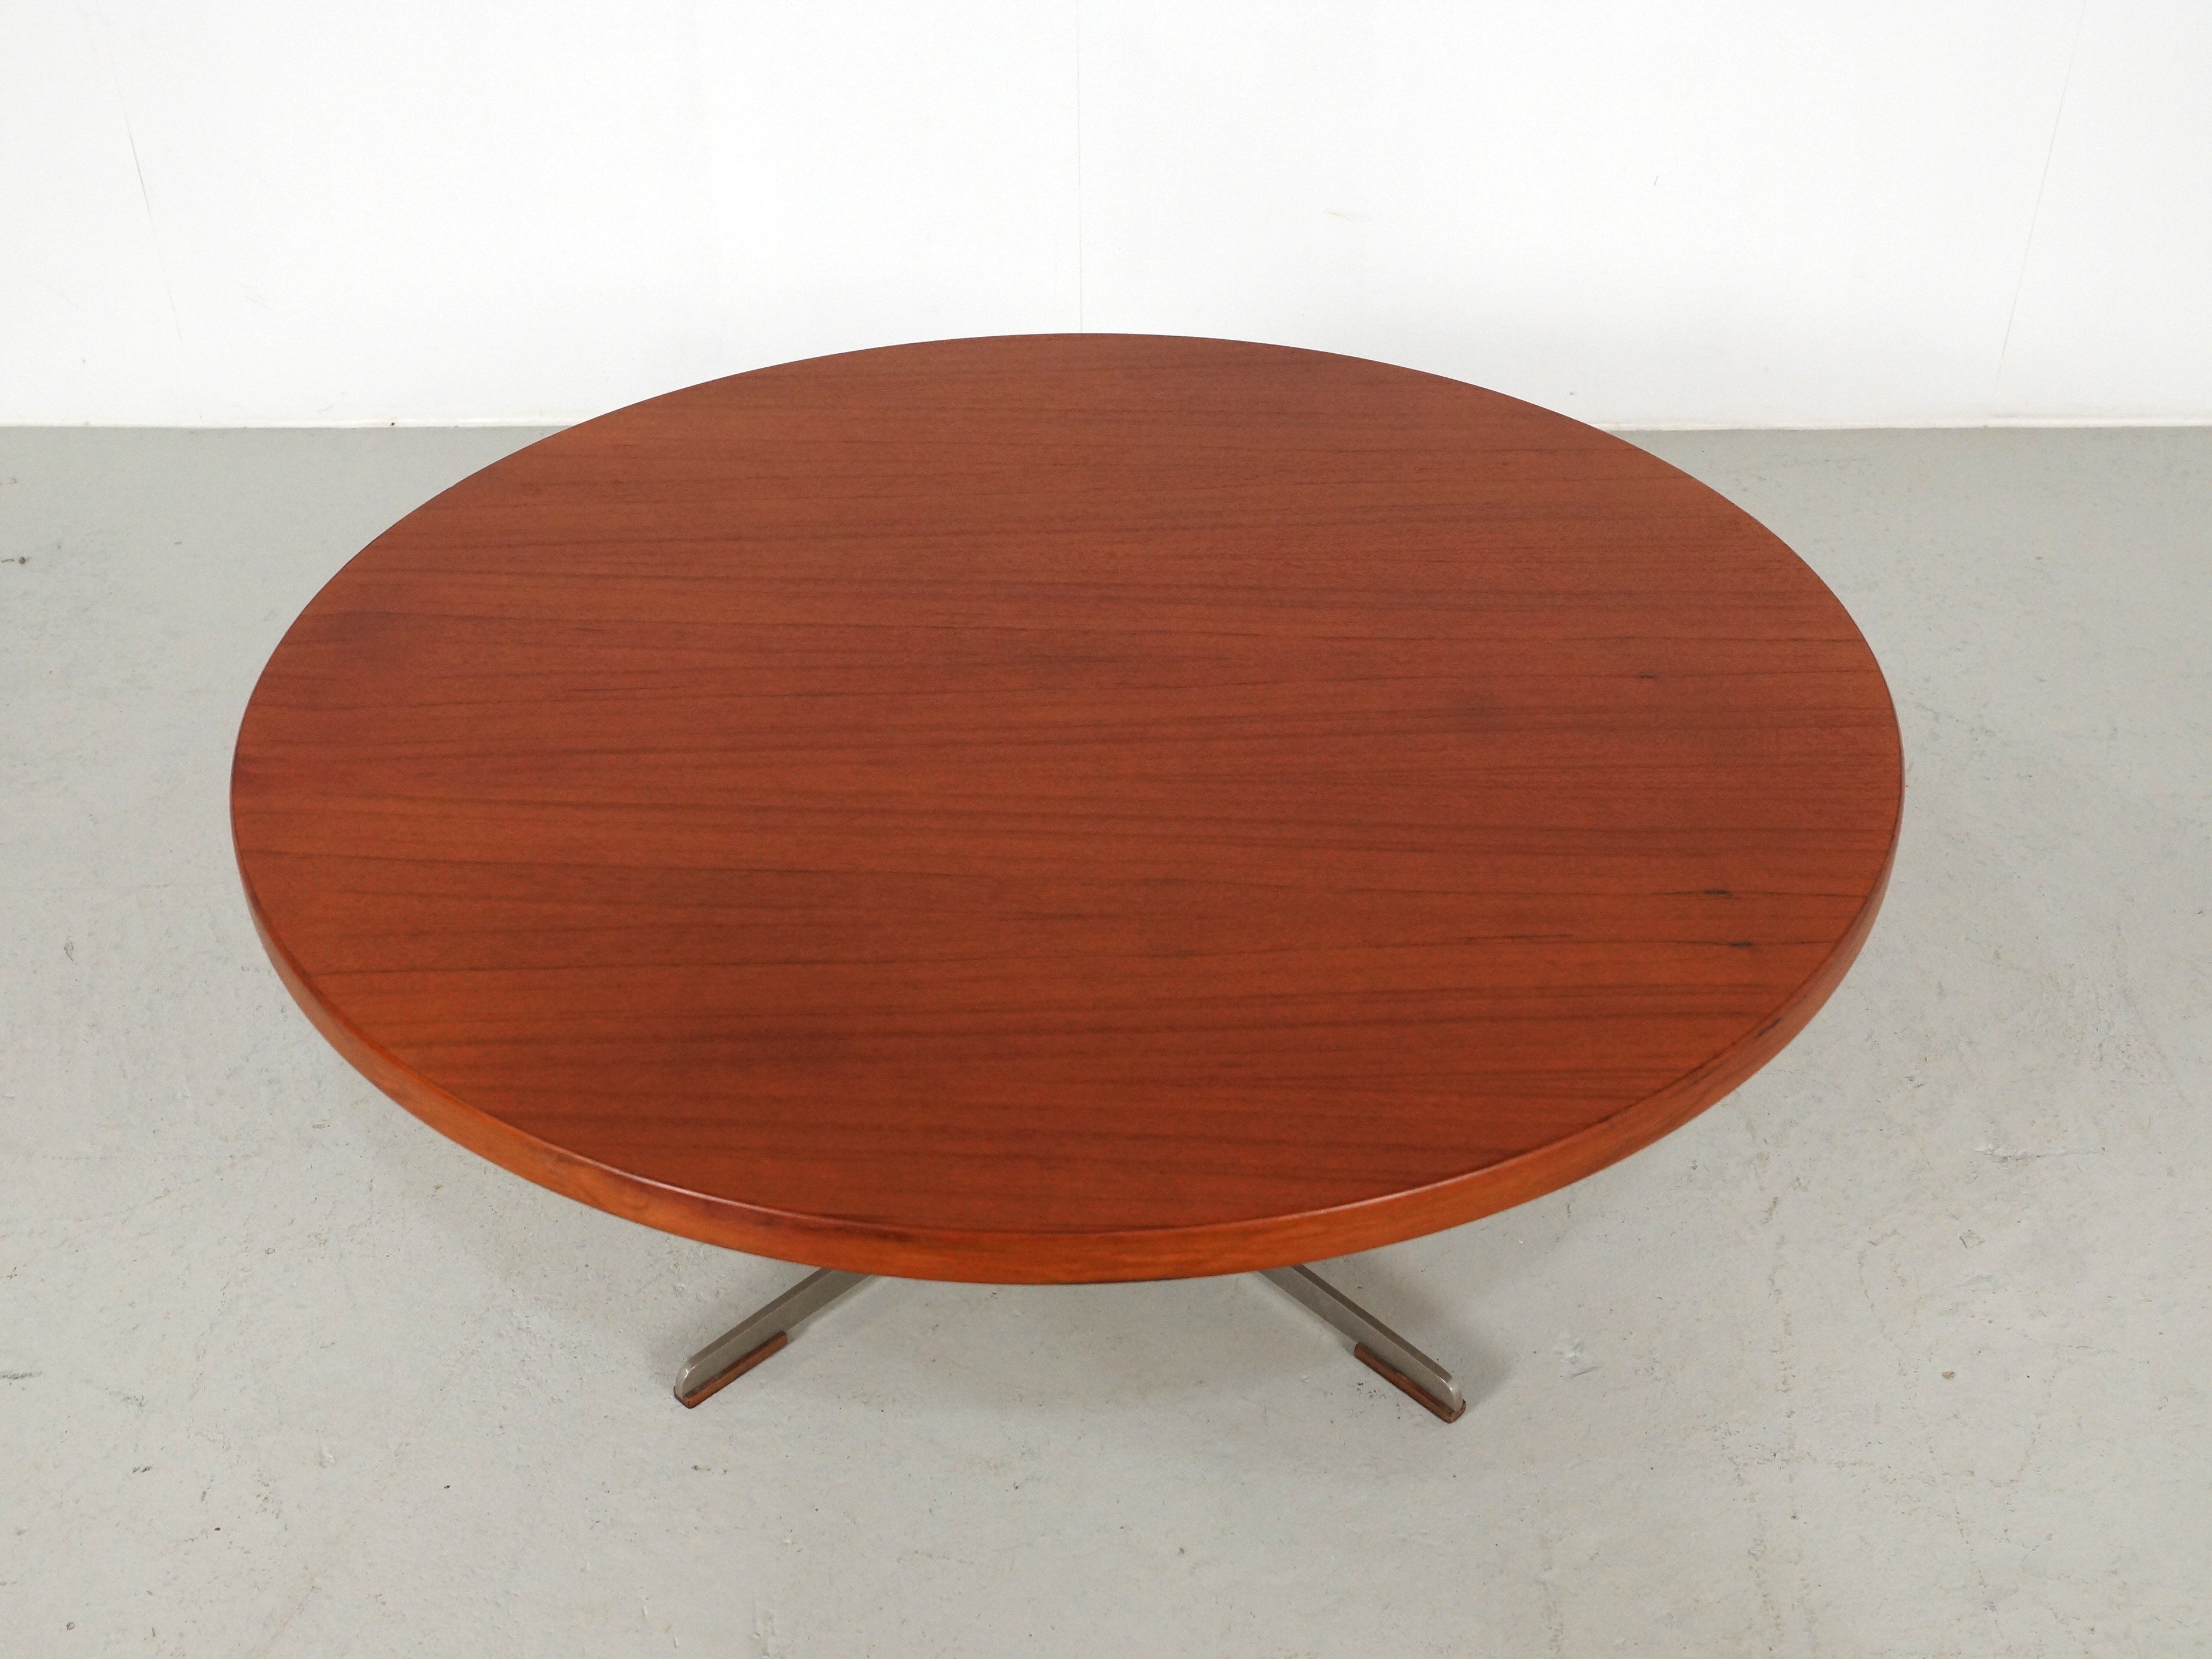 Vintage round teak coffee table - 1960s - Design Market